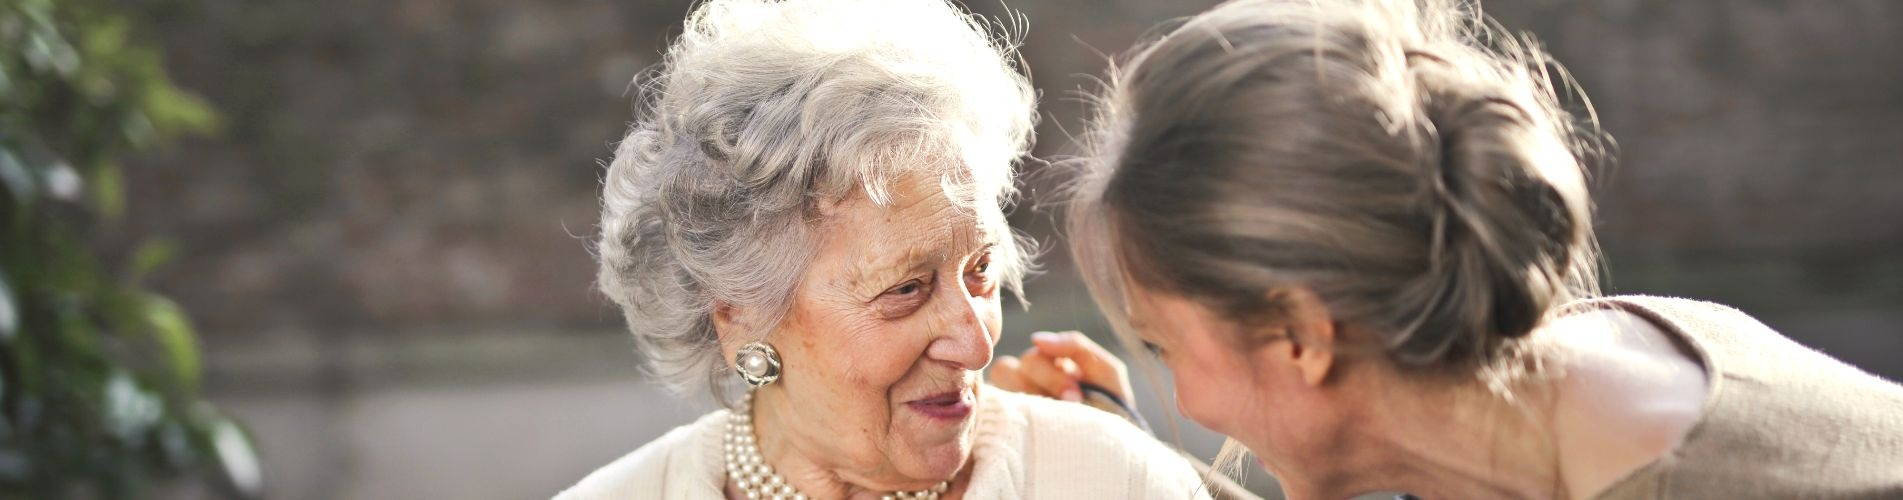 How Seniors Can Stay Healthy in 2020